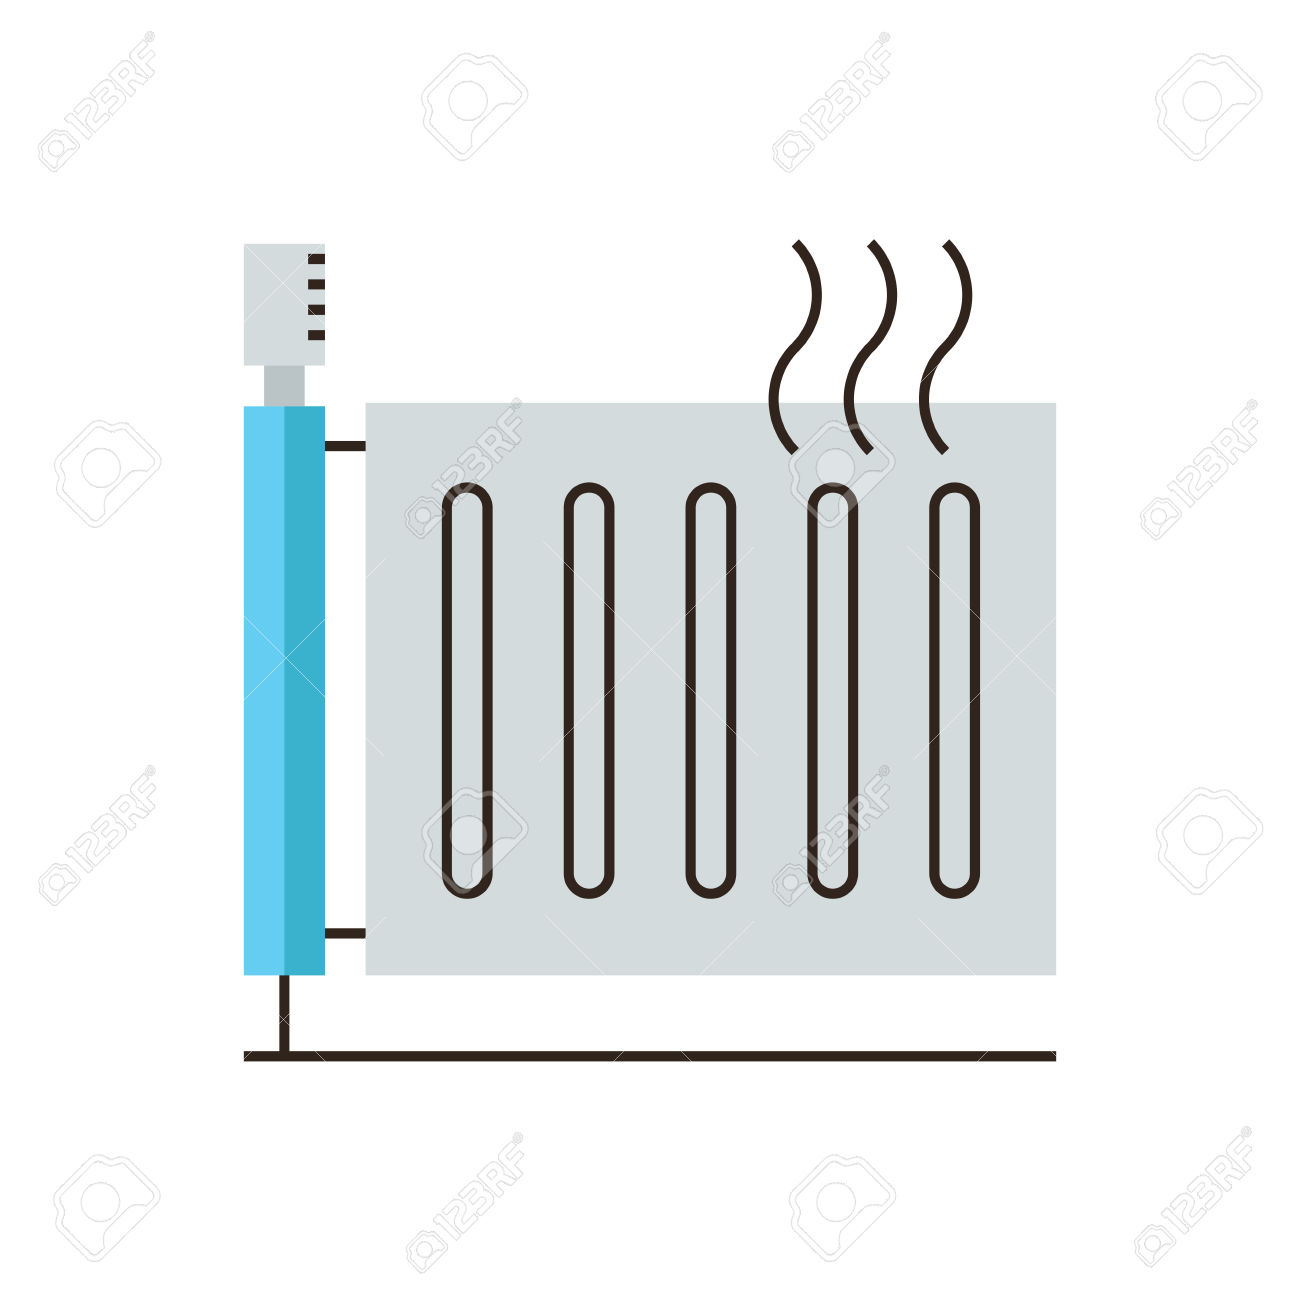 Thin Line Icon With Flat Design Element Of Heating Radiator.